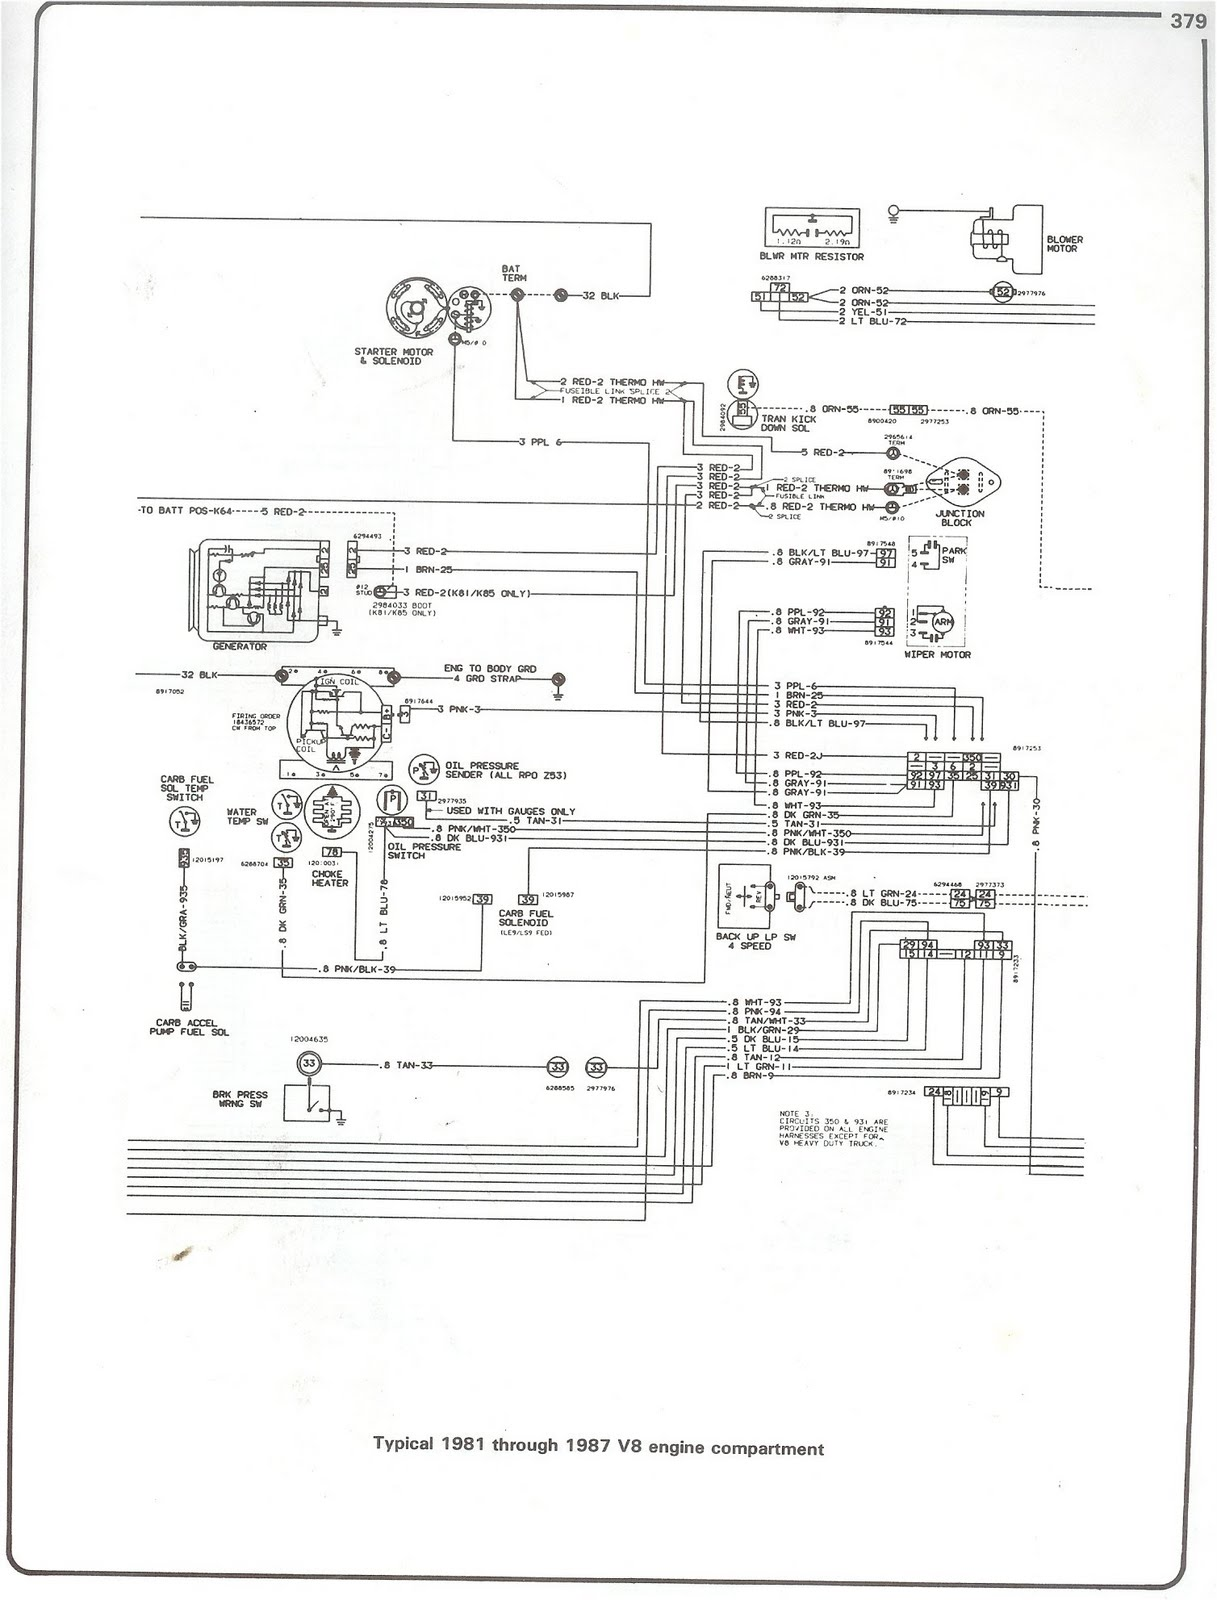 Chevy Truck V Engine on 1979 Toyota Pickup Wiring Diagram